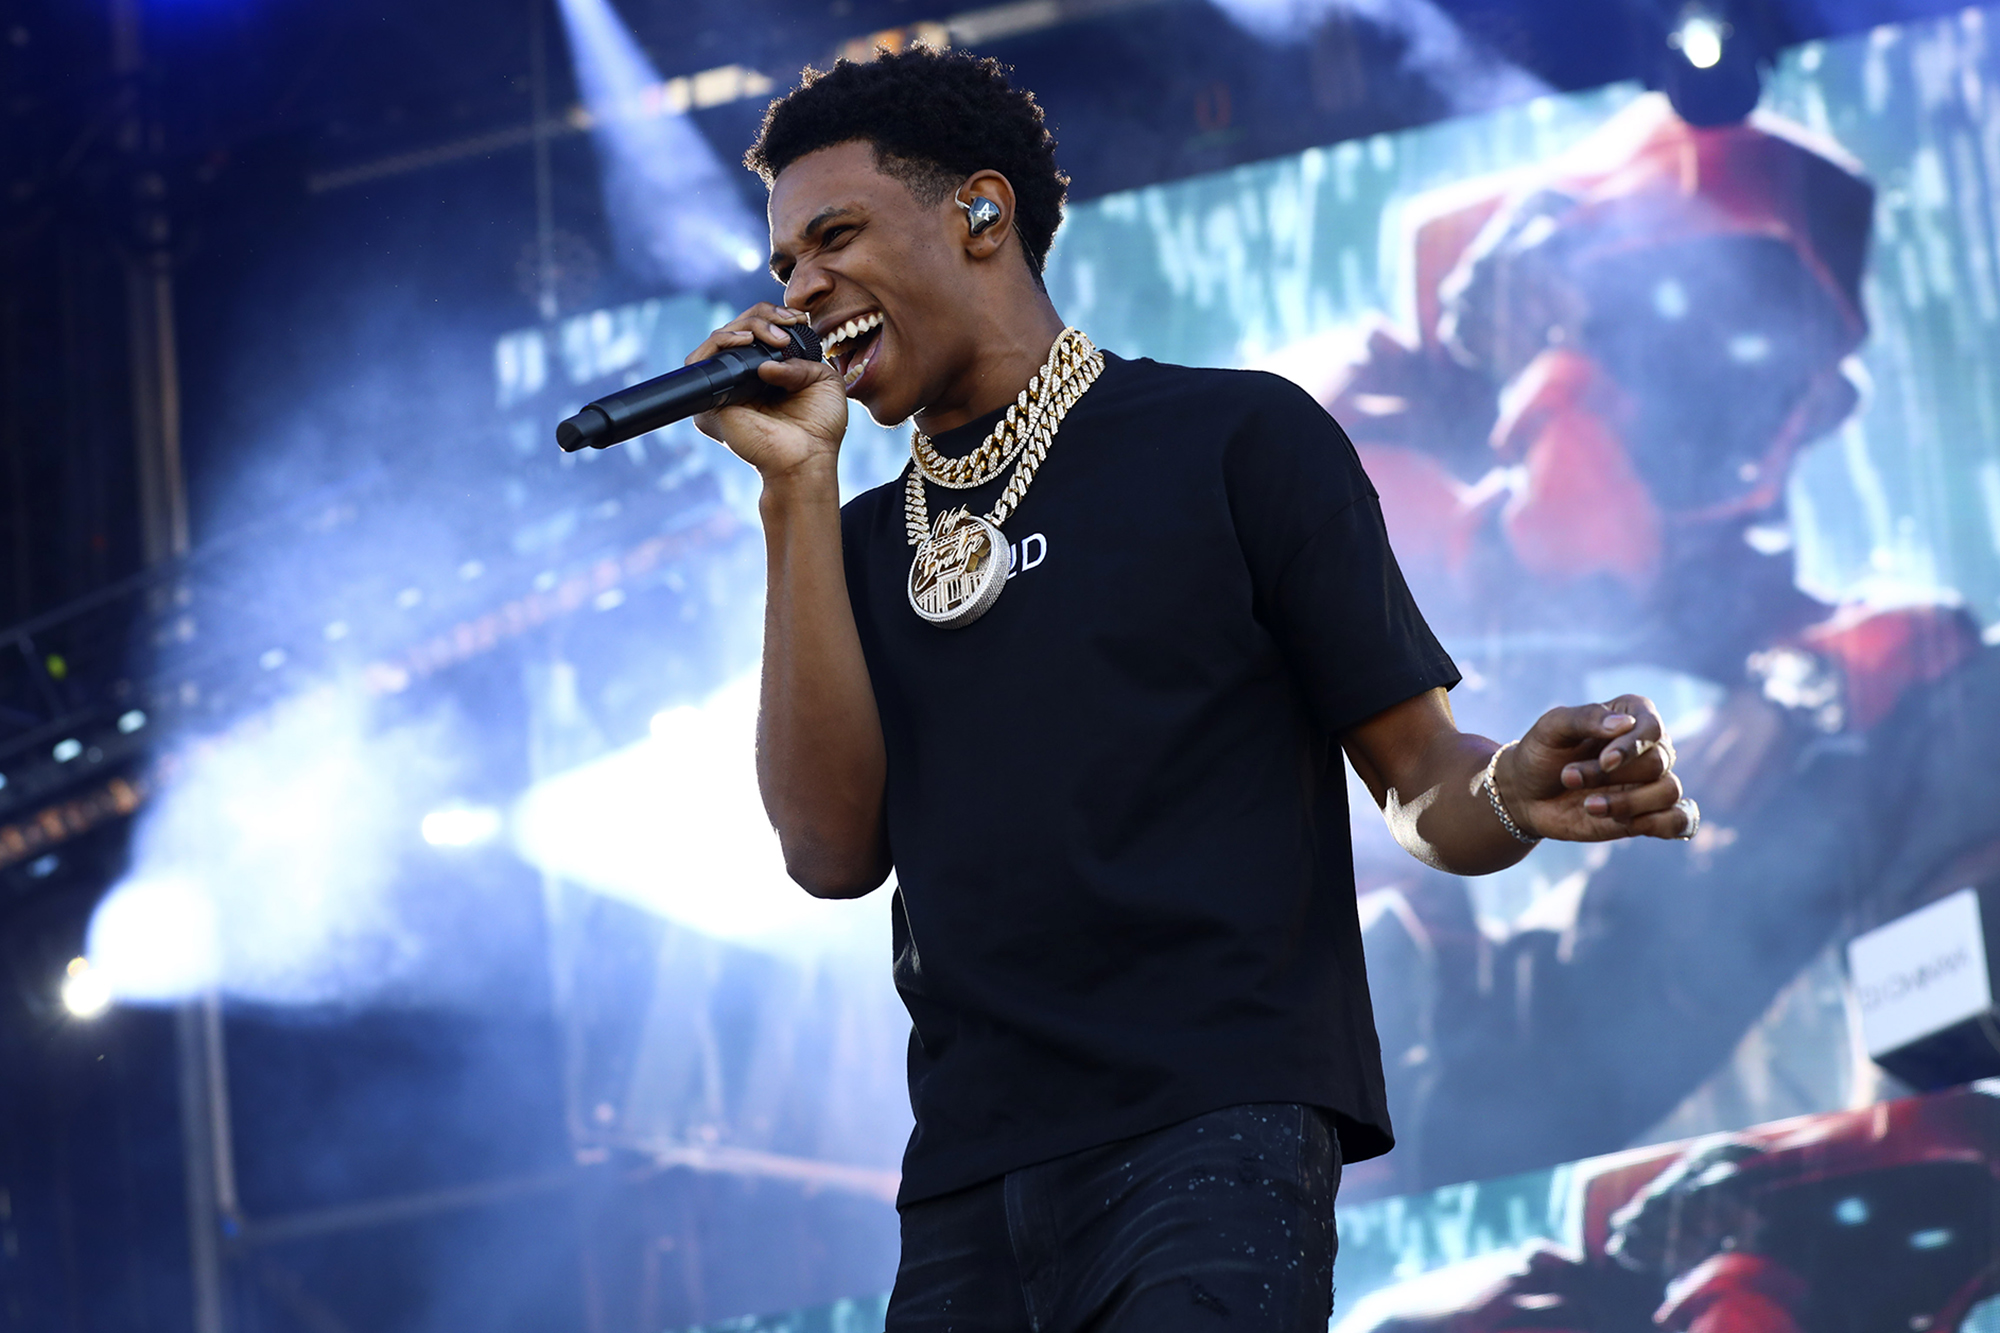 A Boogie Wit da Hoodie clogged toilets at NJ mansion: suit